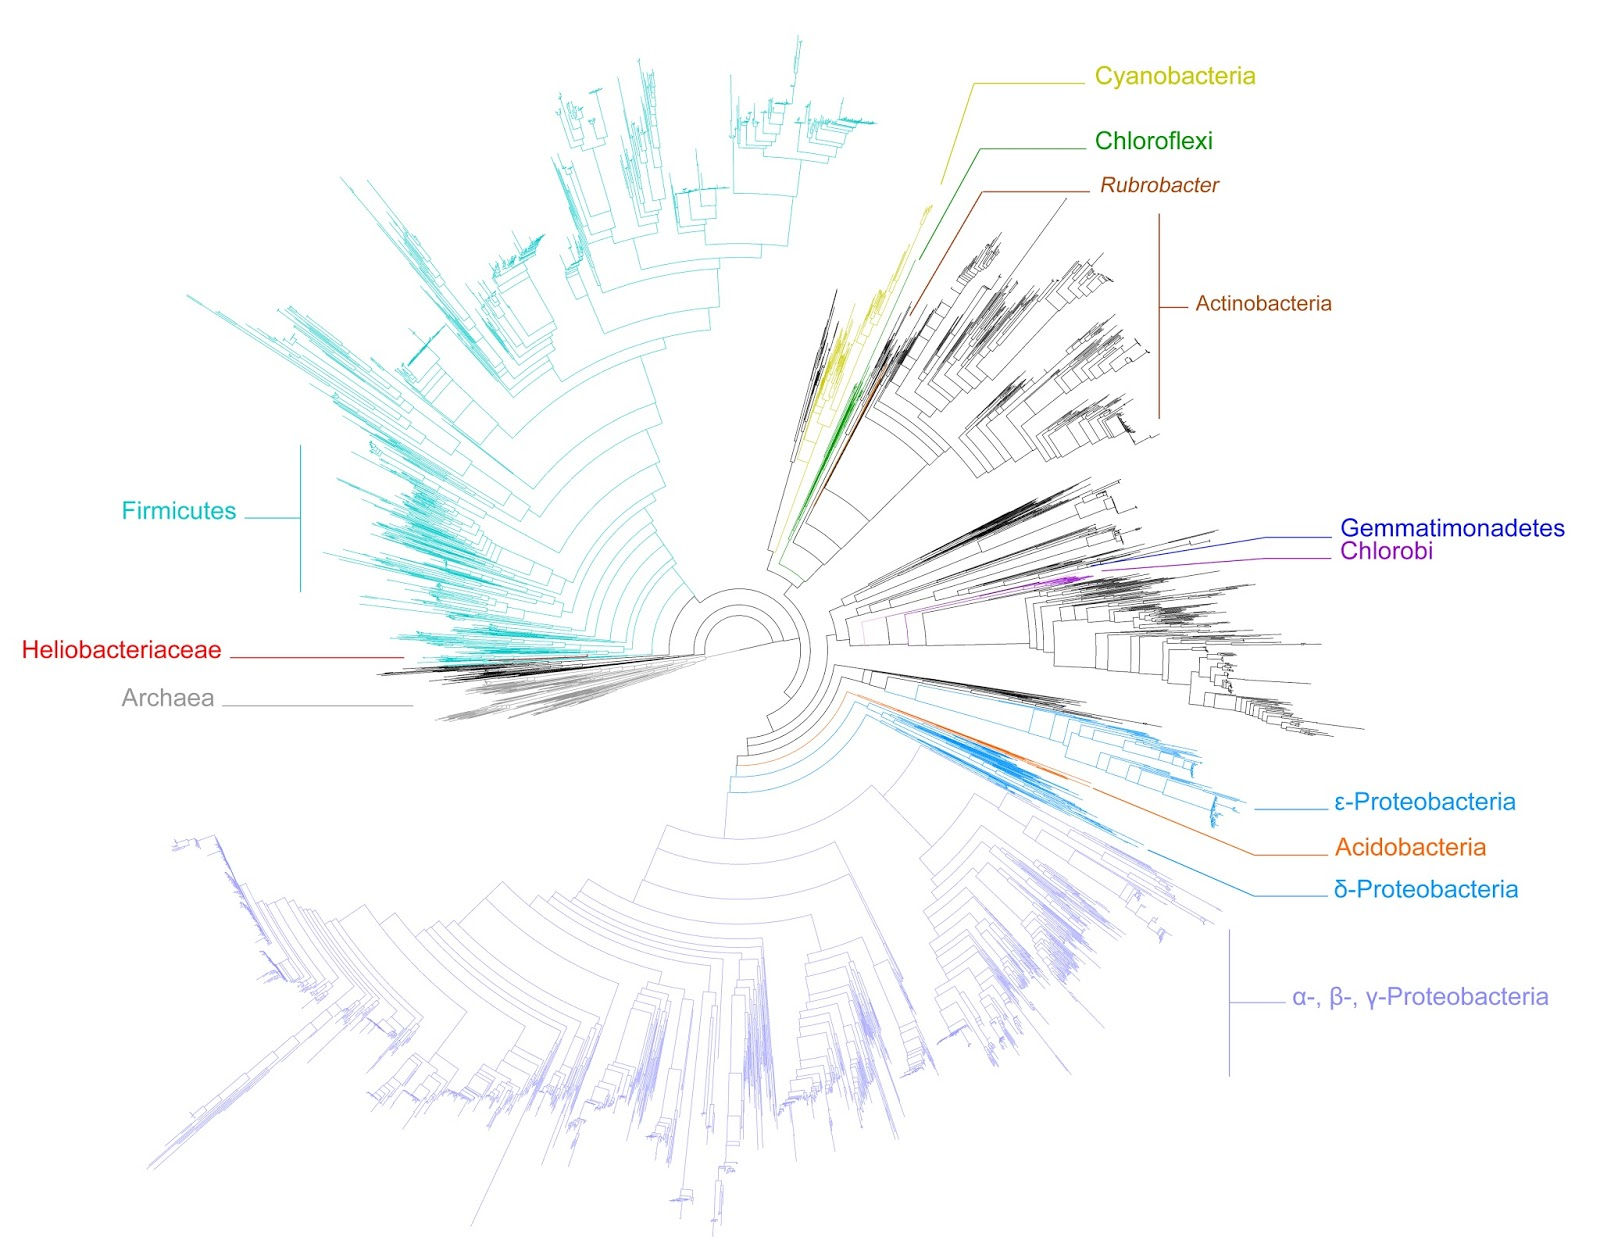 medium resolution of tree of life highlighting phototrophic clades the tree is taken from segata et al 2013 it s open access and freely available